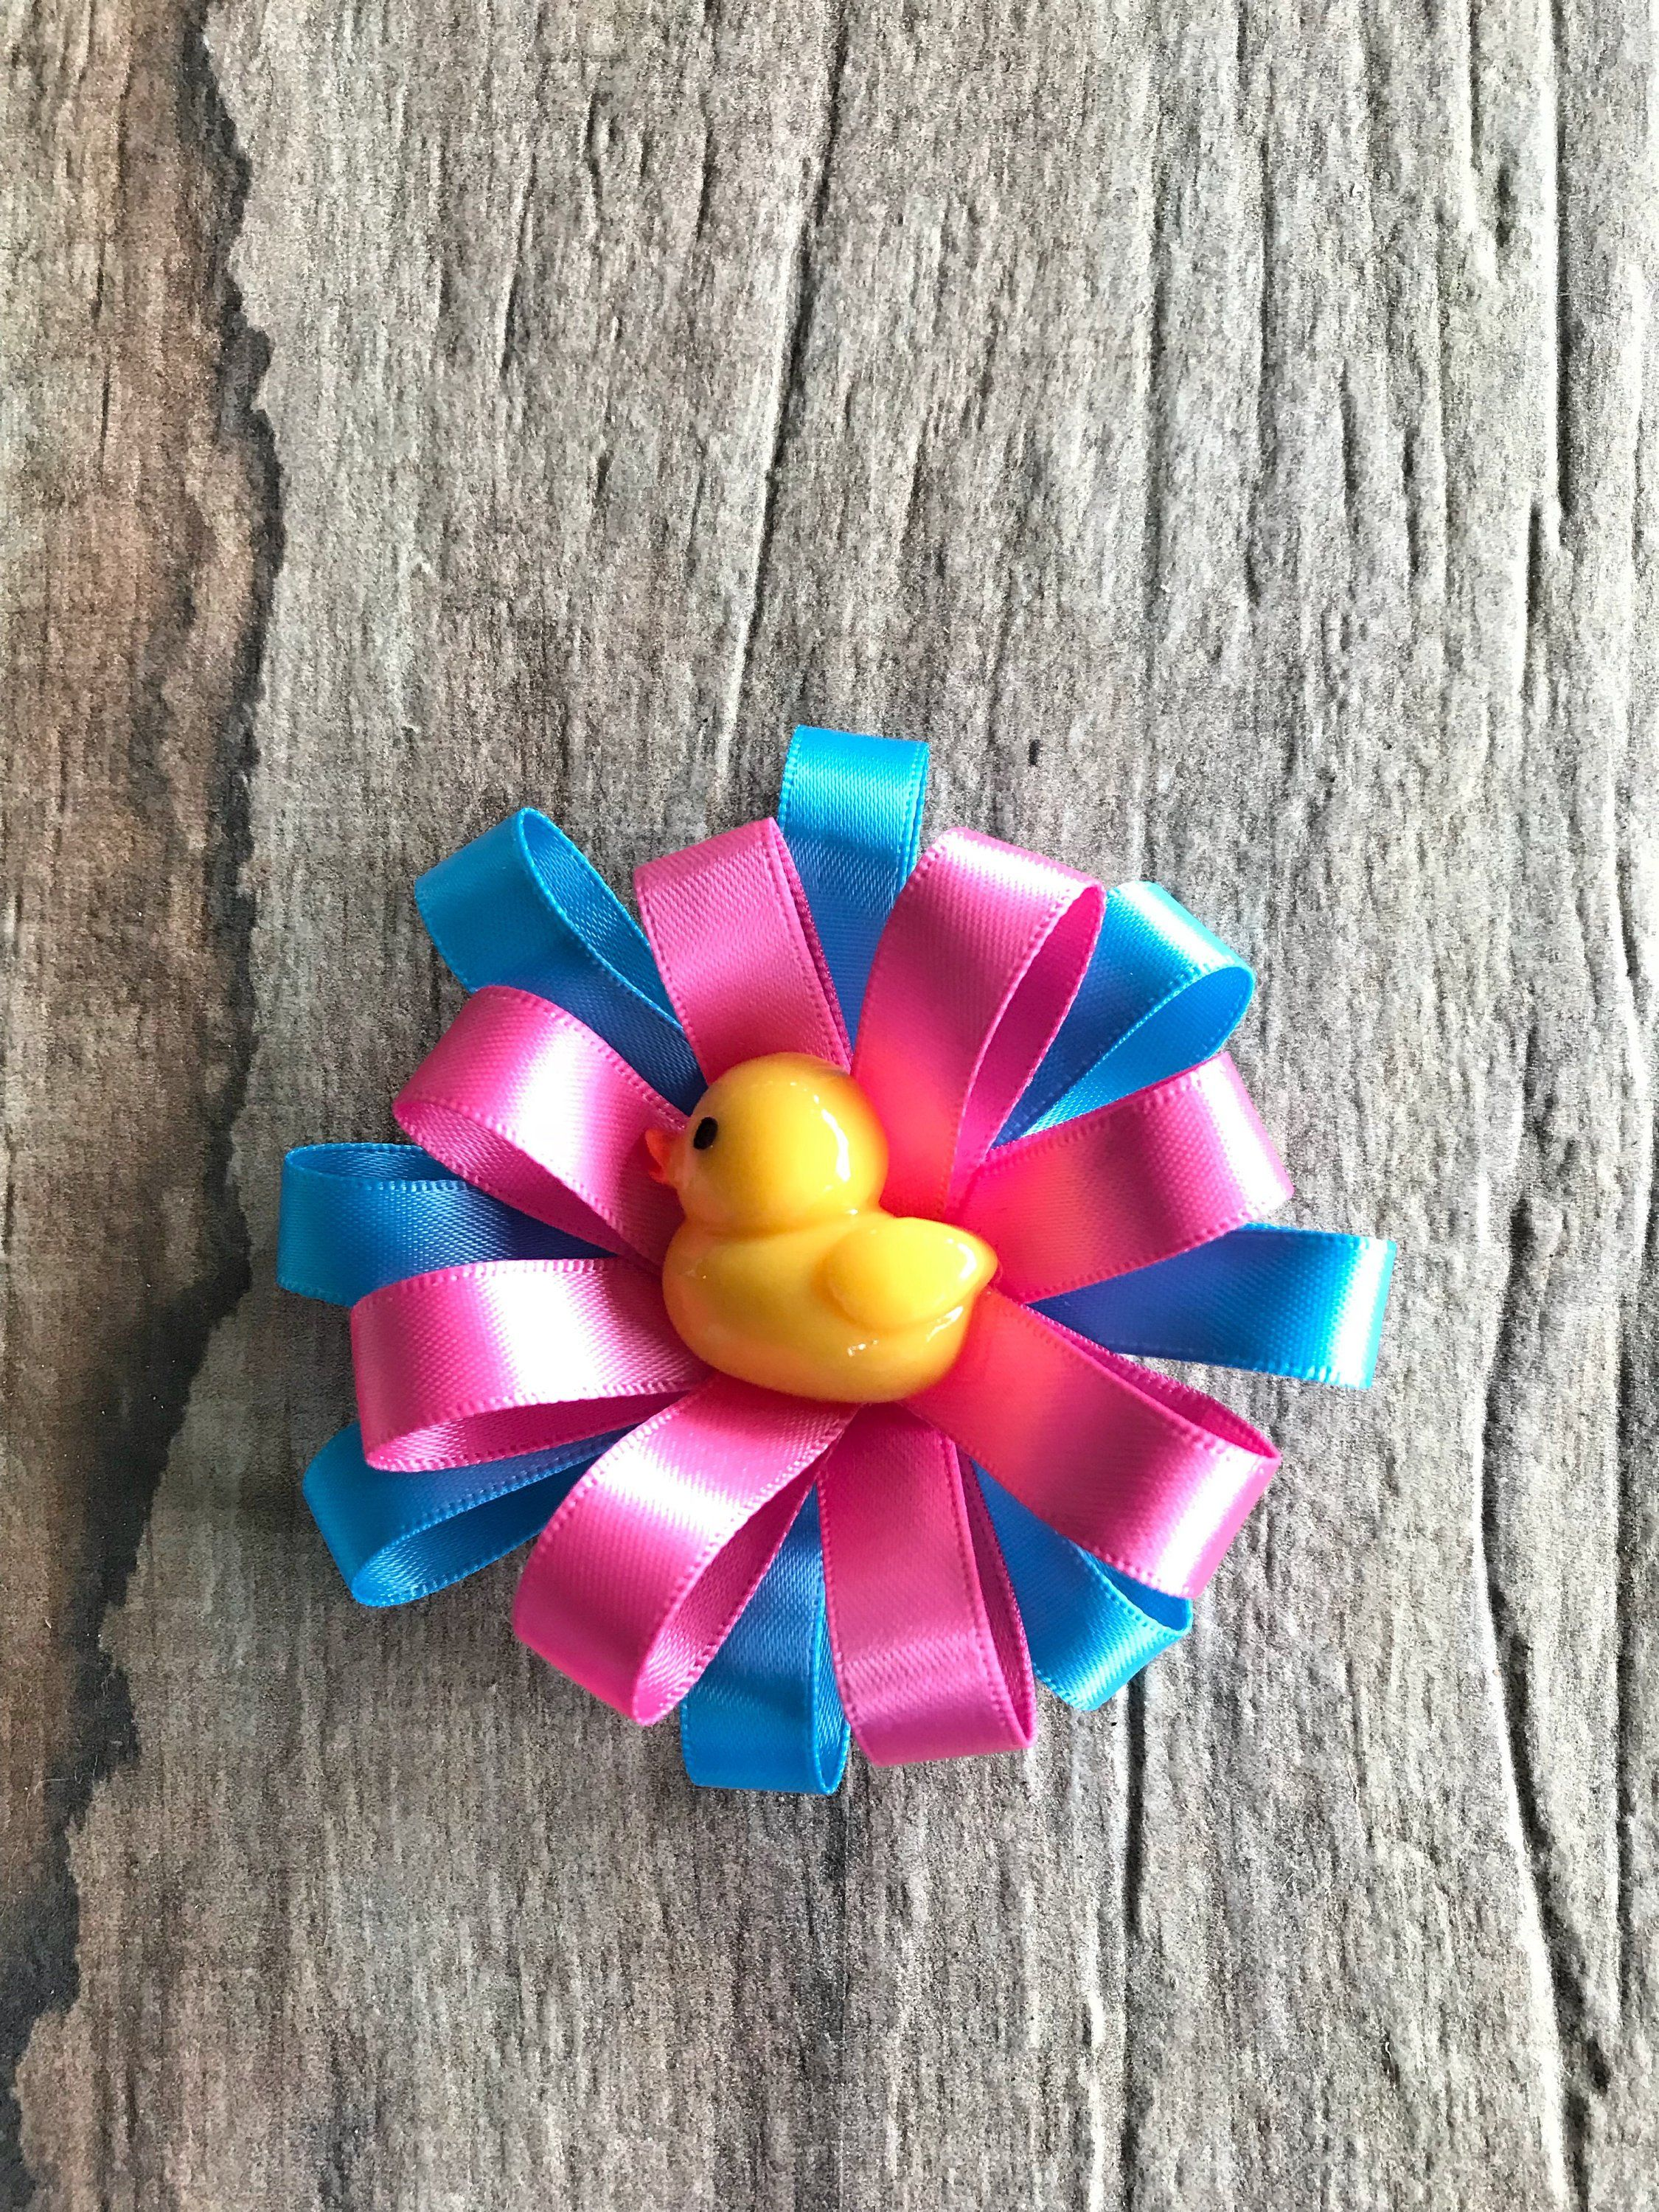 Handmade 4 Inch Hair Clip Bow Lilac Girls' Accessories Kids' Clothes, Shoes & Accs.